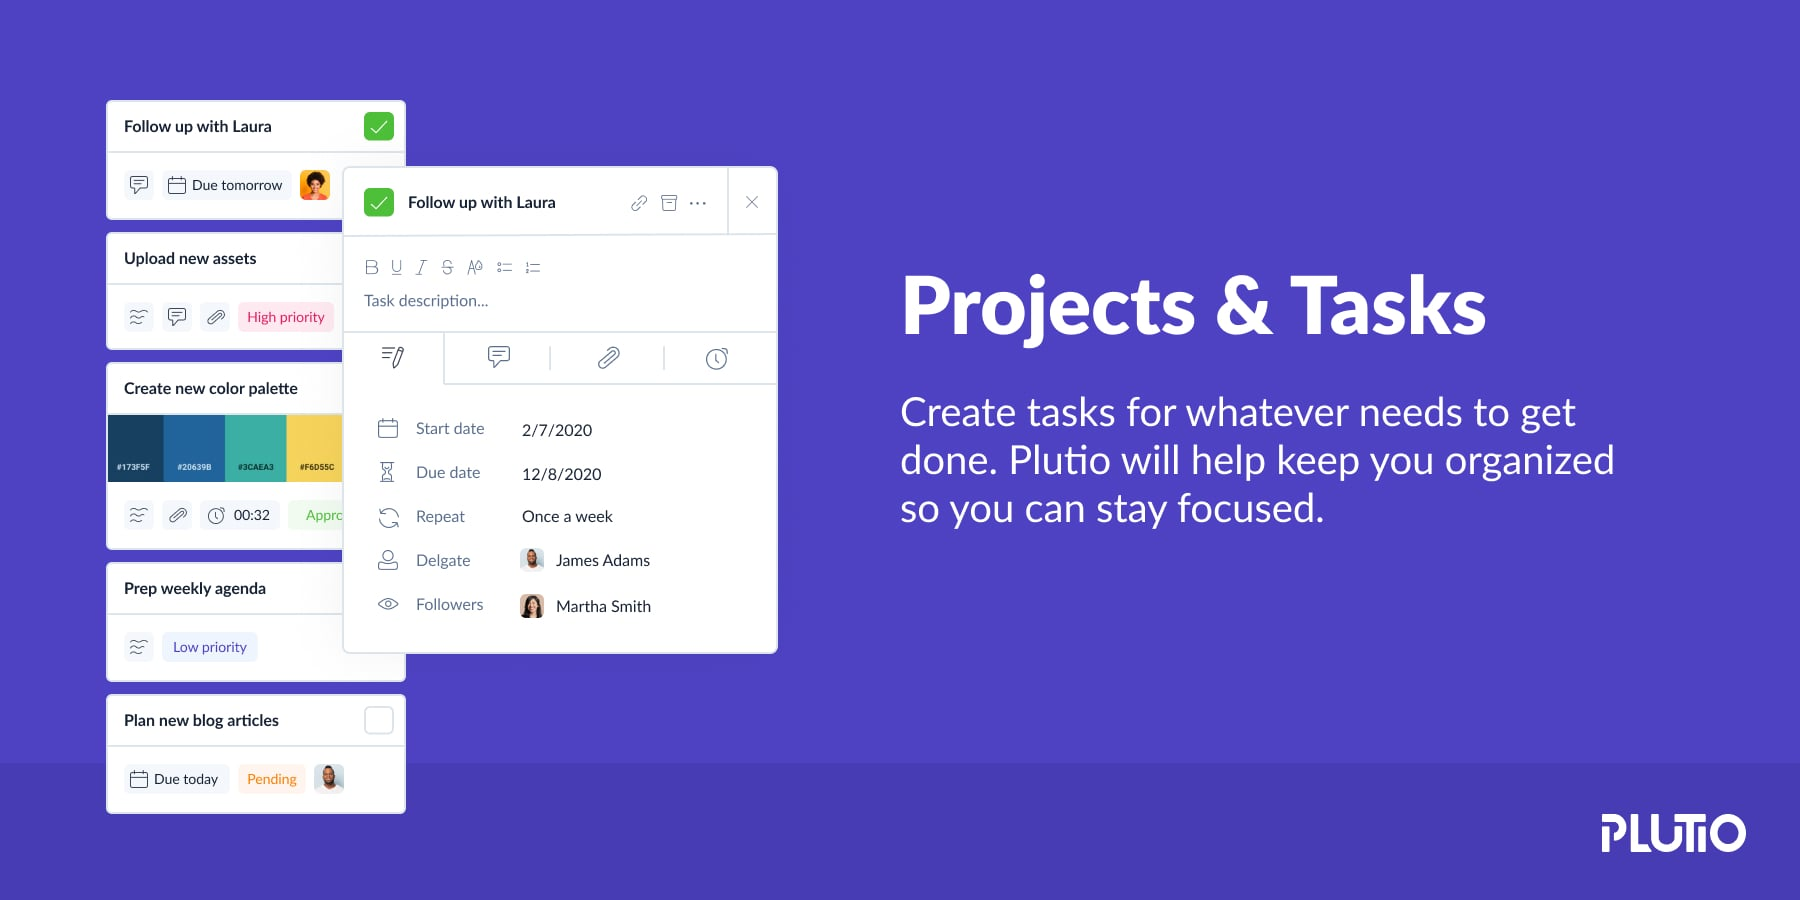 plutio project and tasks banner